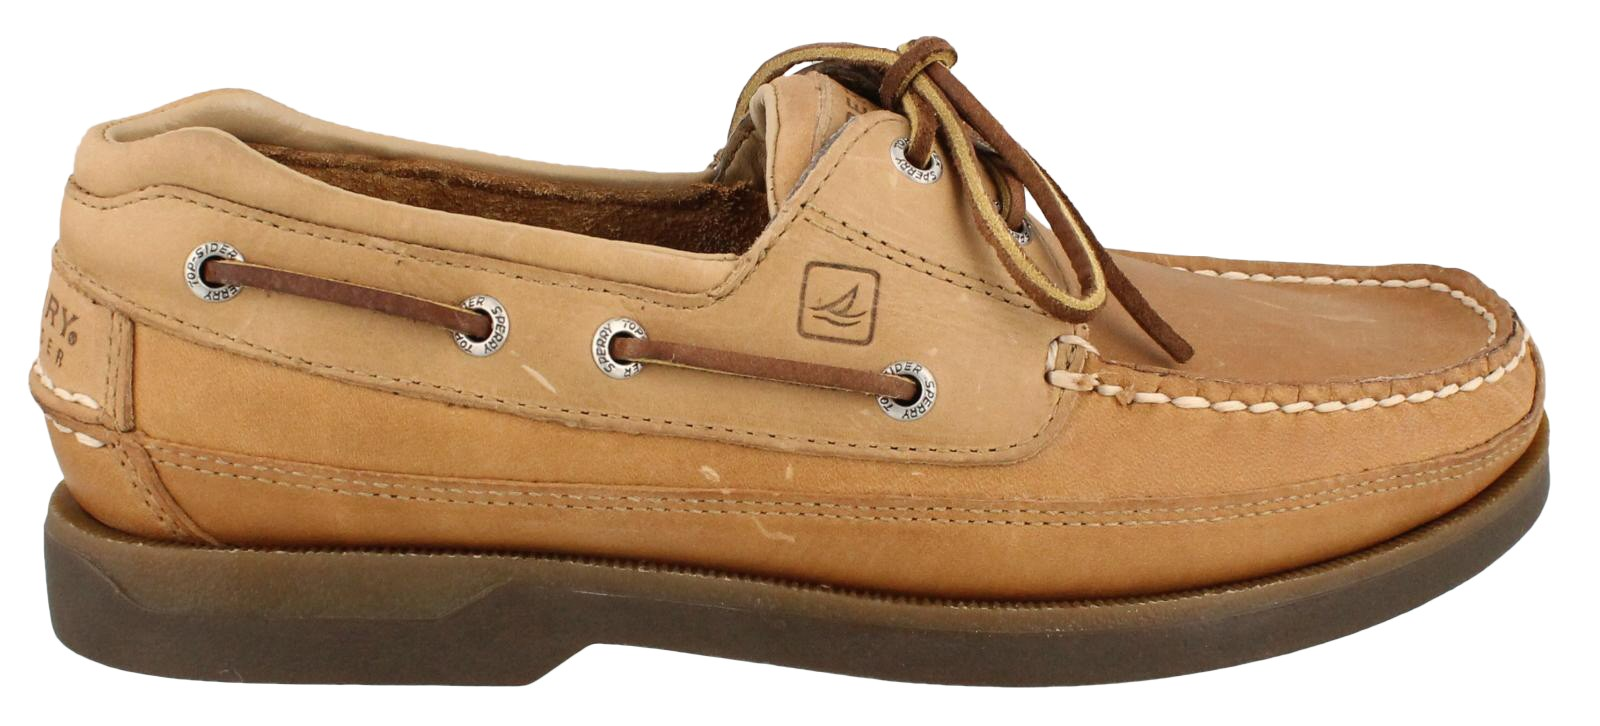 Sperry Top Sider Mako  Eye Canoe Moc Boat Shoe